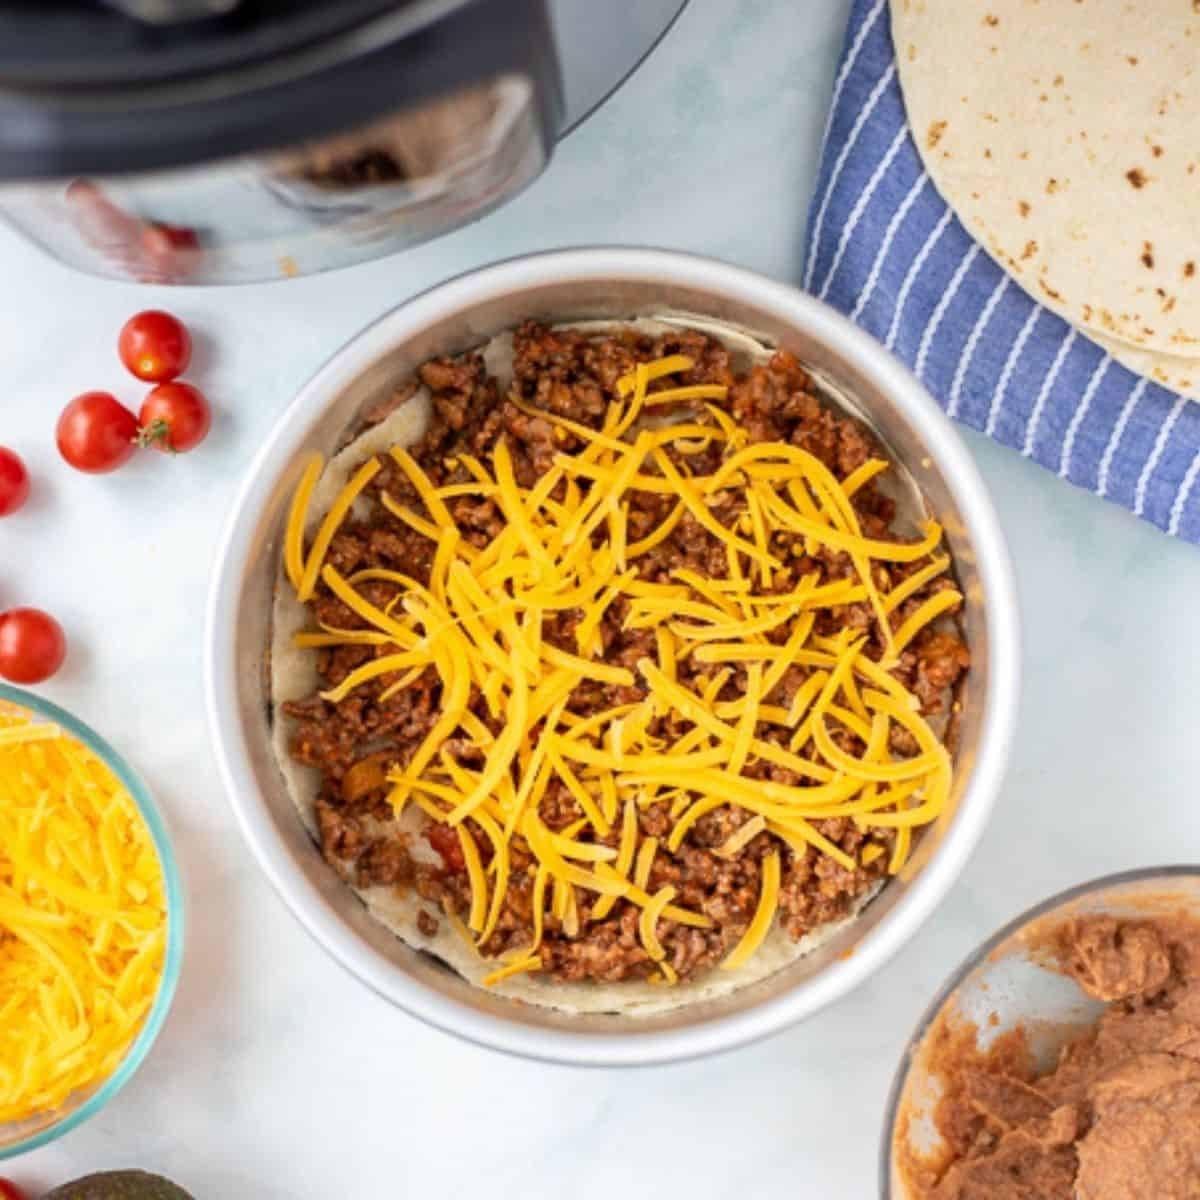 Layer of taco pie with taco meat and cheese in cake pan.